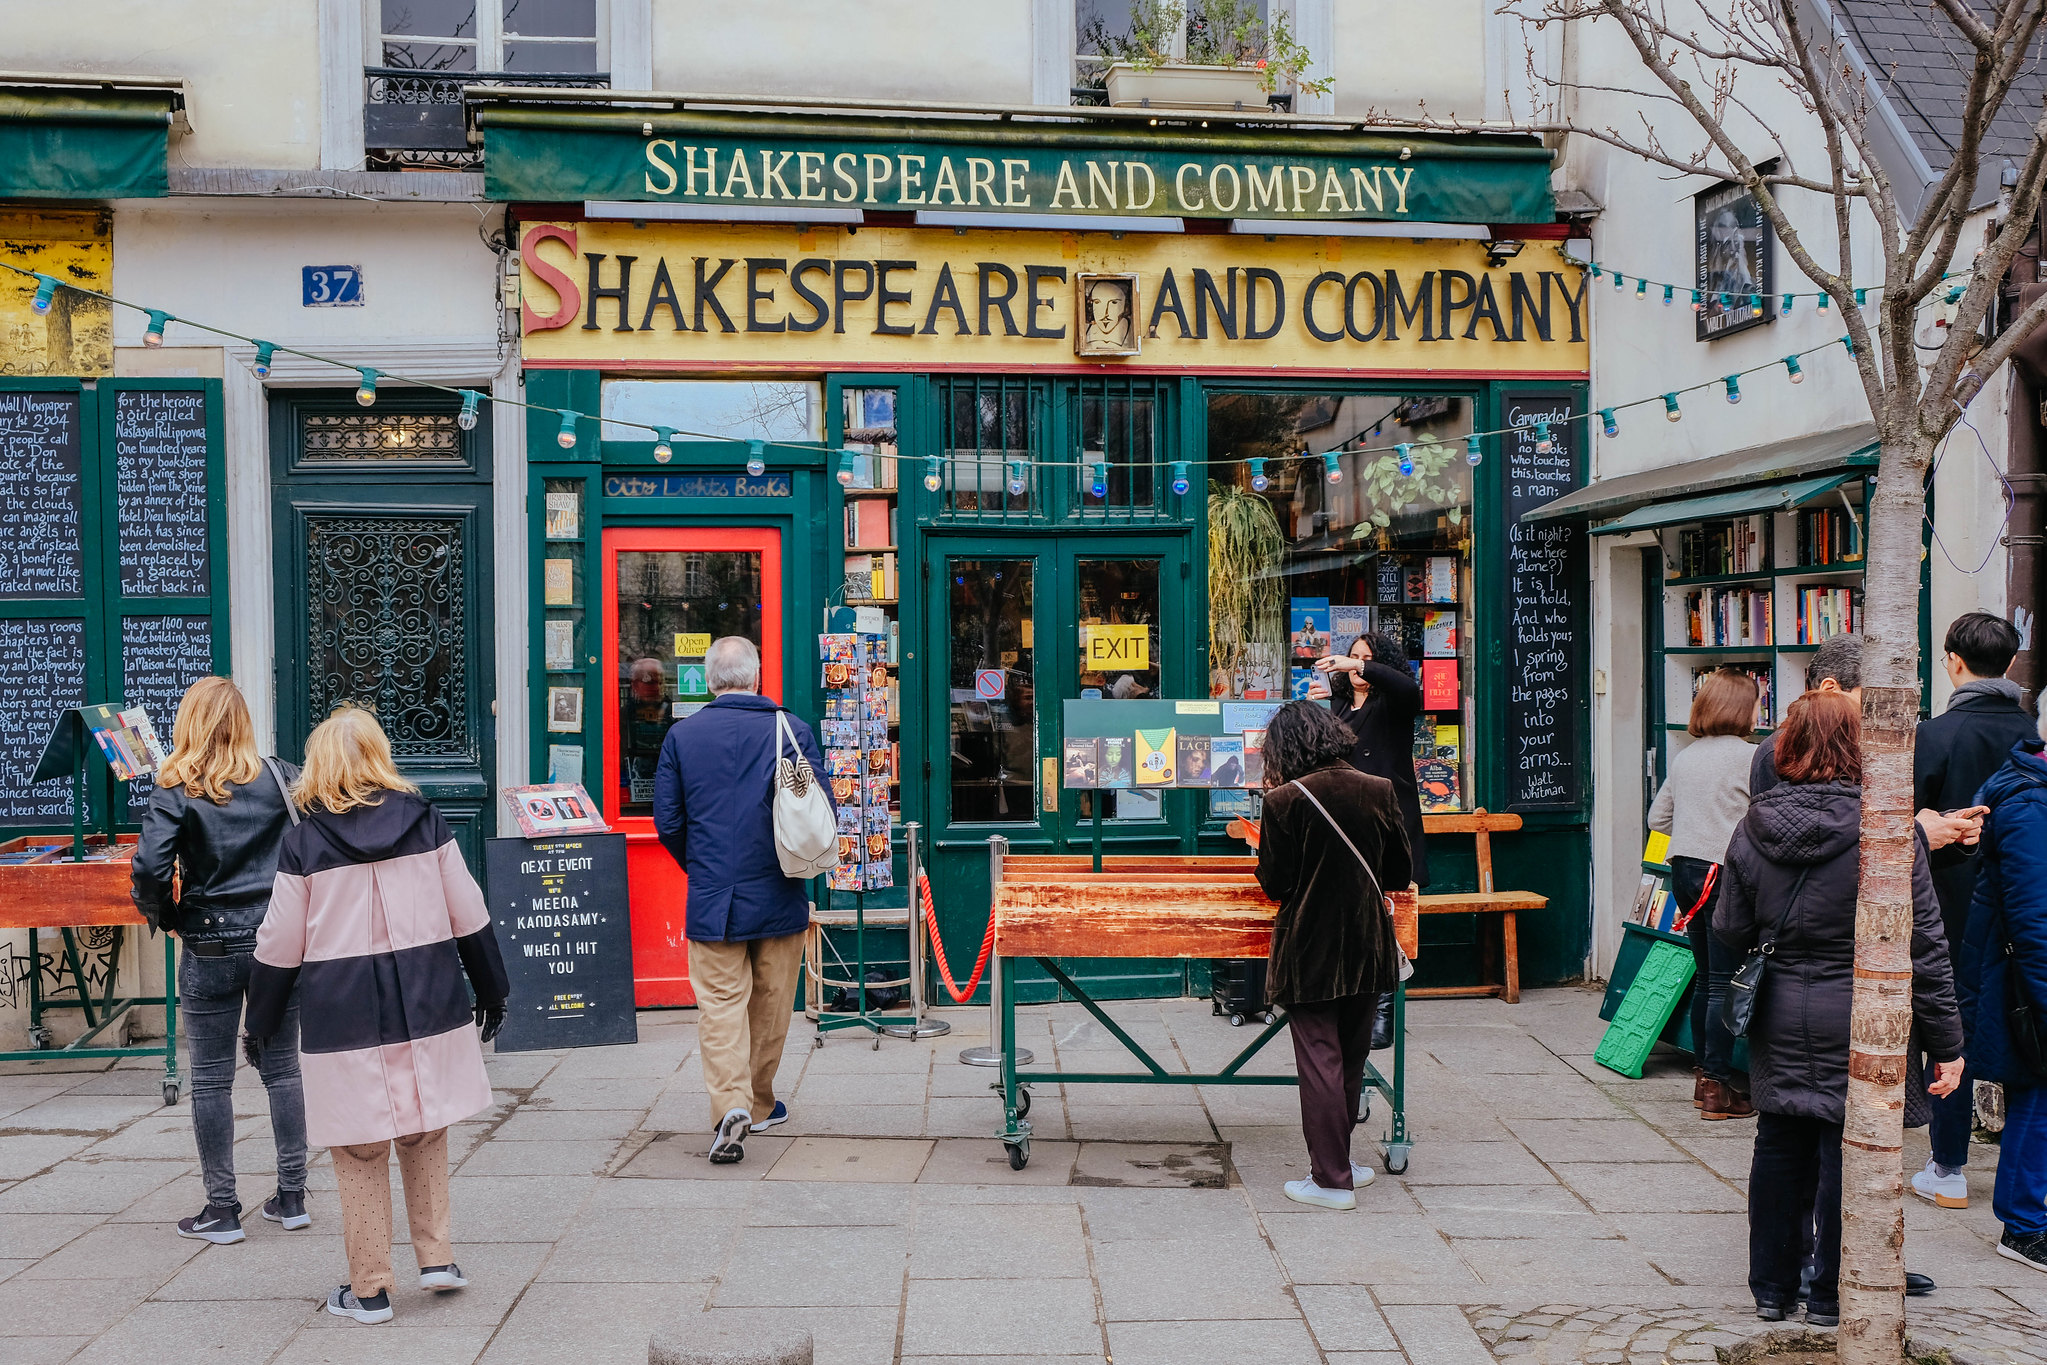 Shakespeare bookshop!